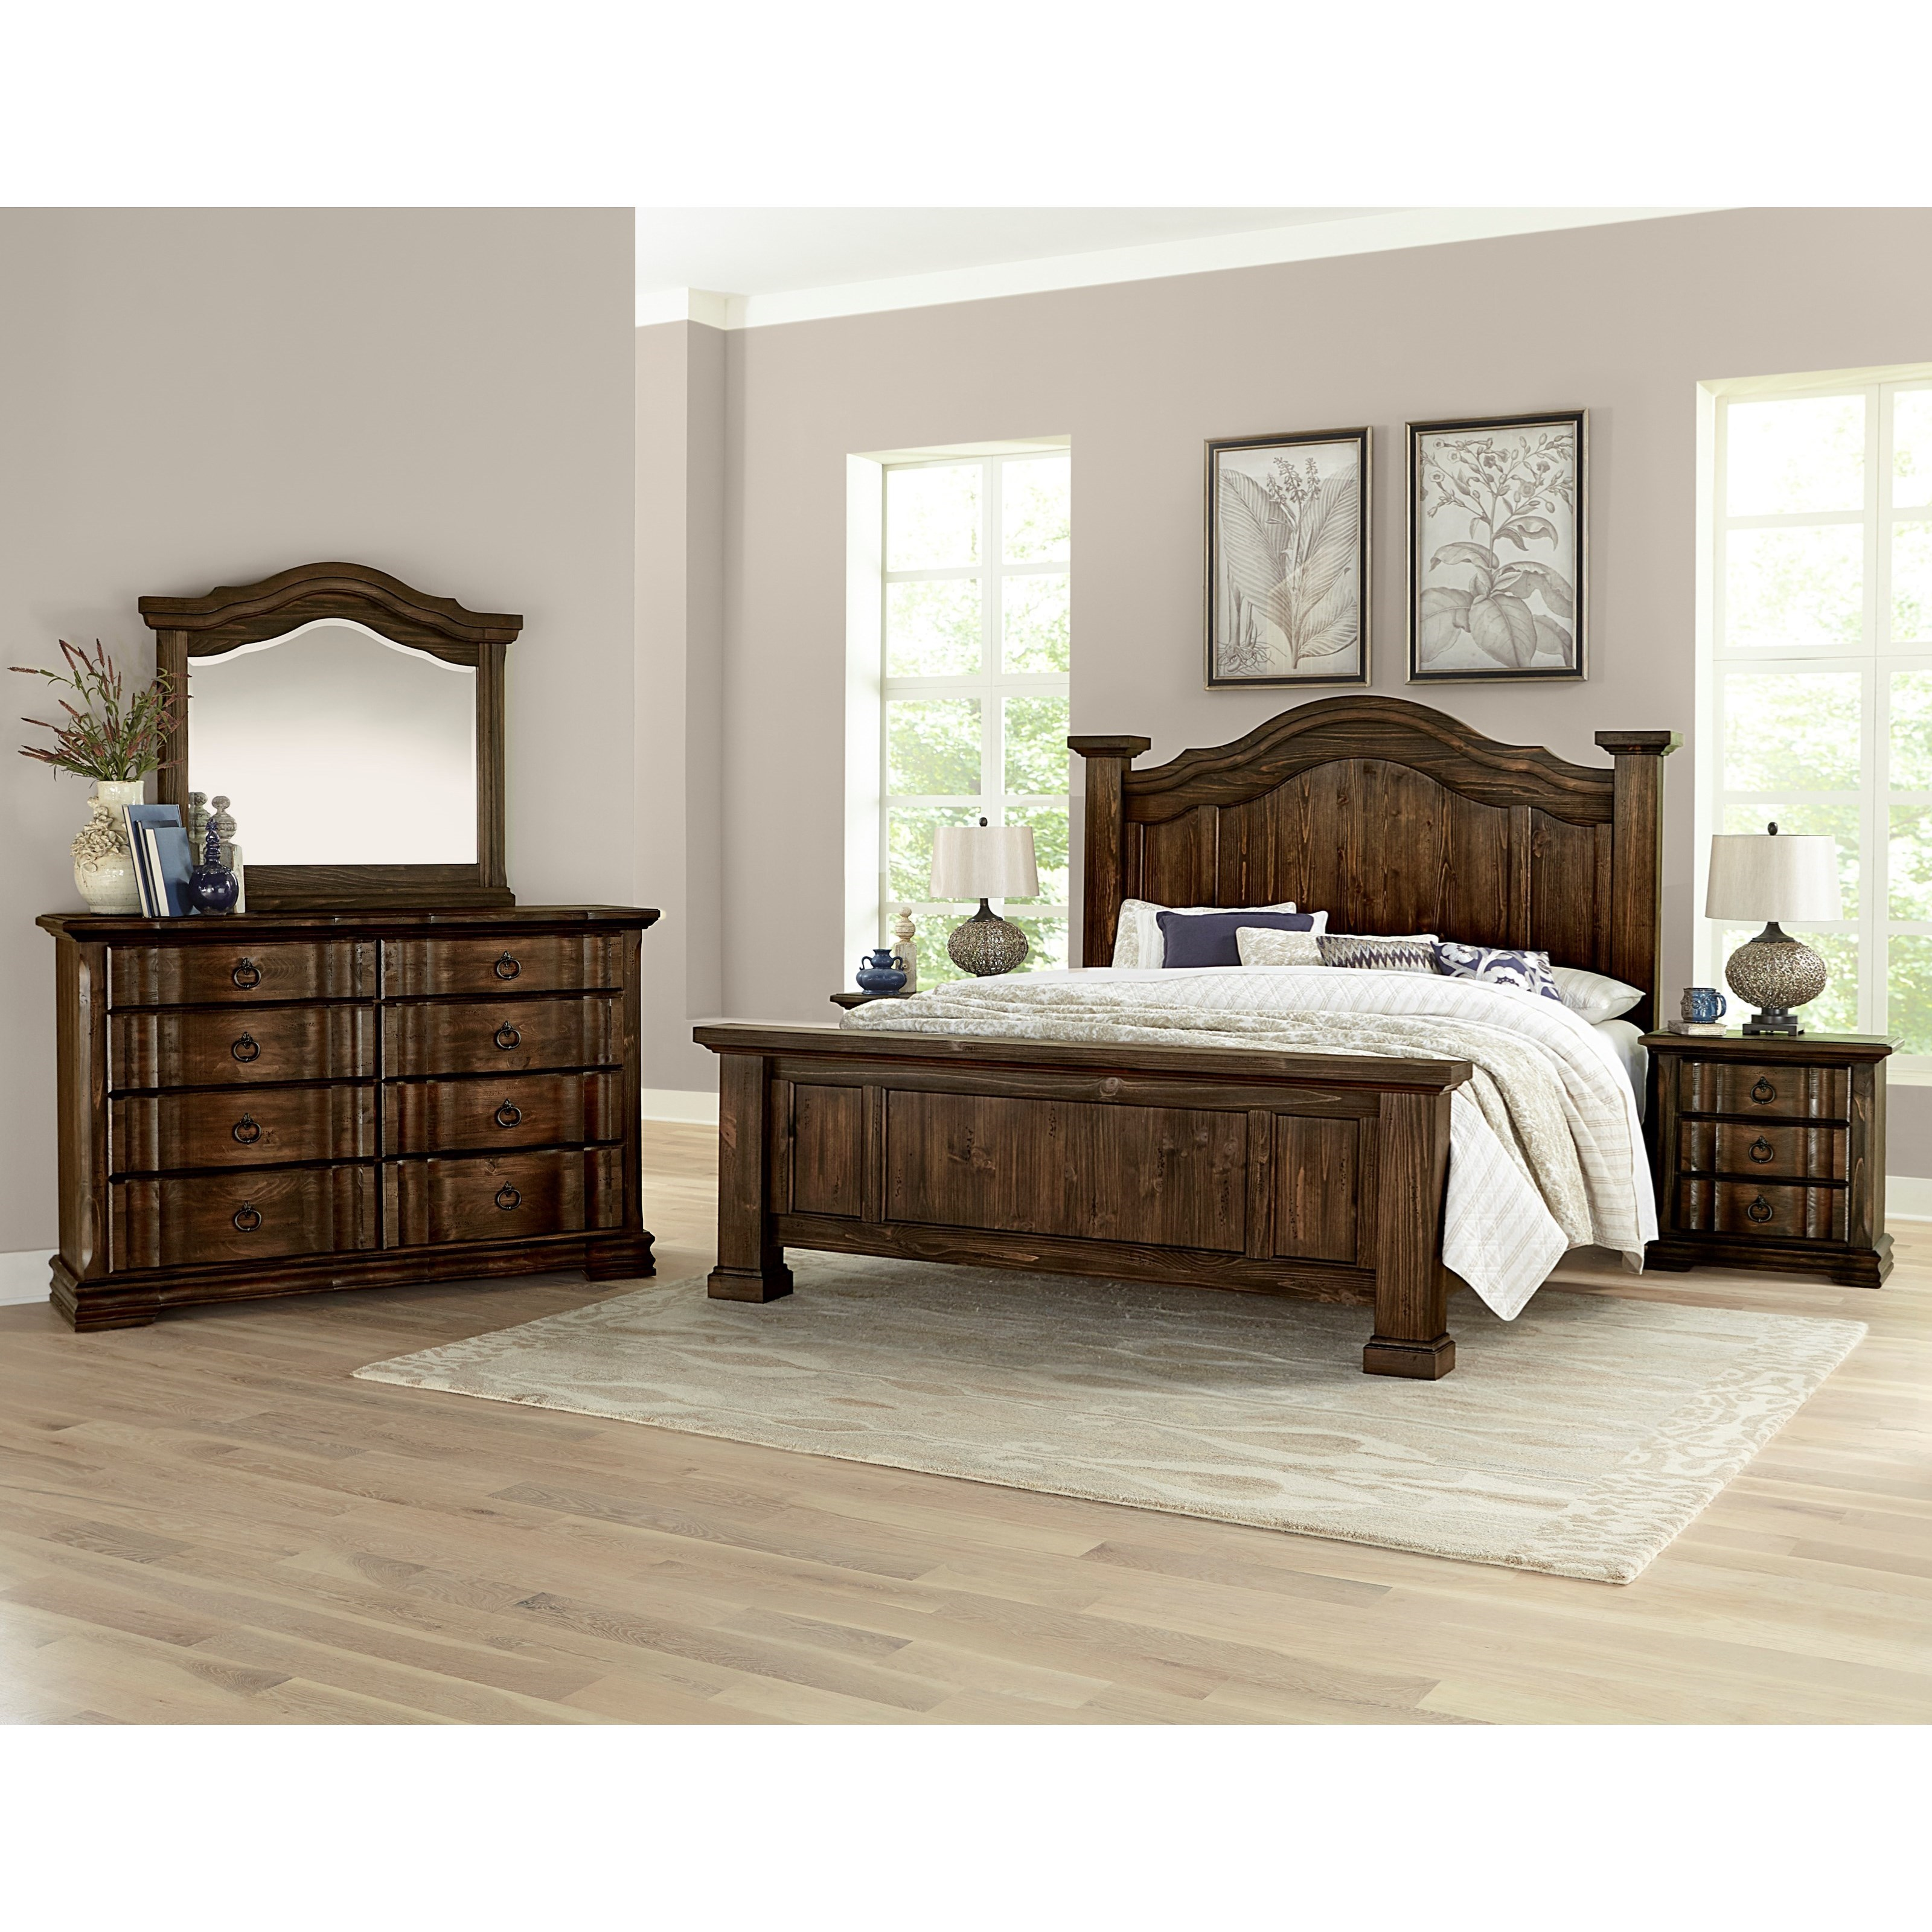 king bassett bedroom vaughan k group value too cottage products city number item